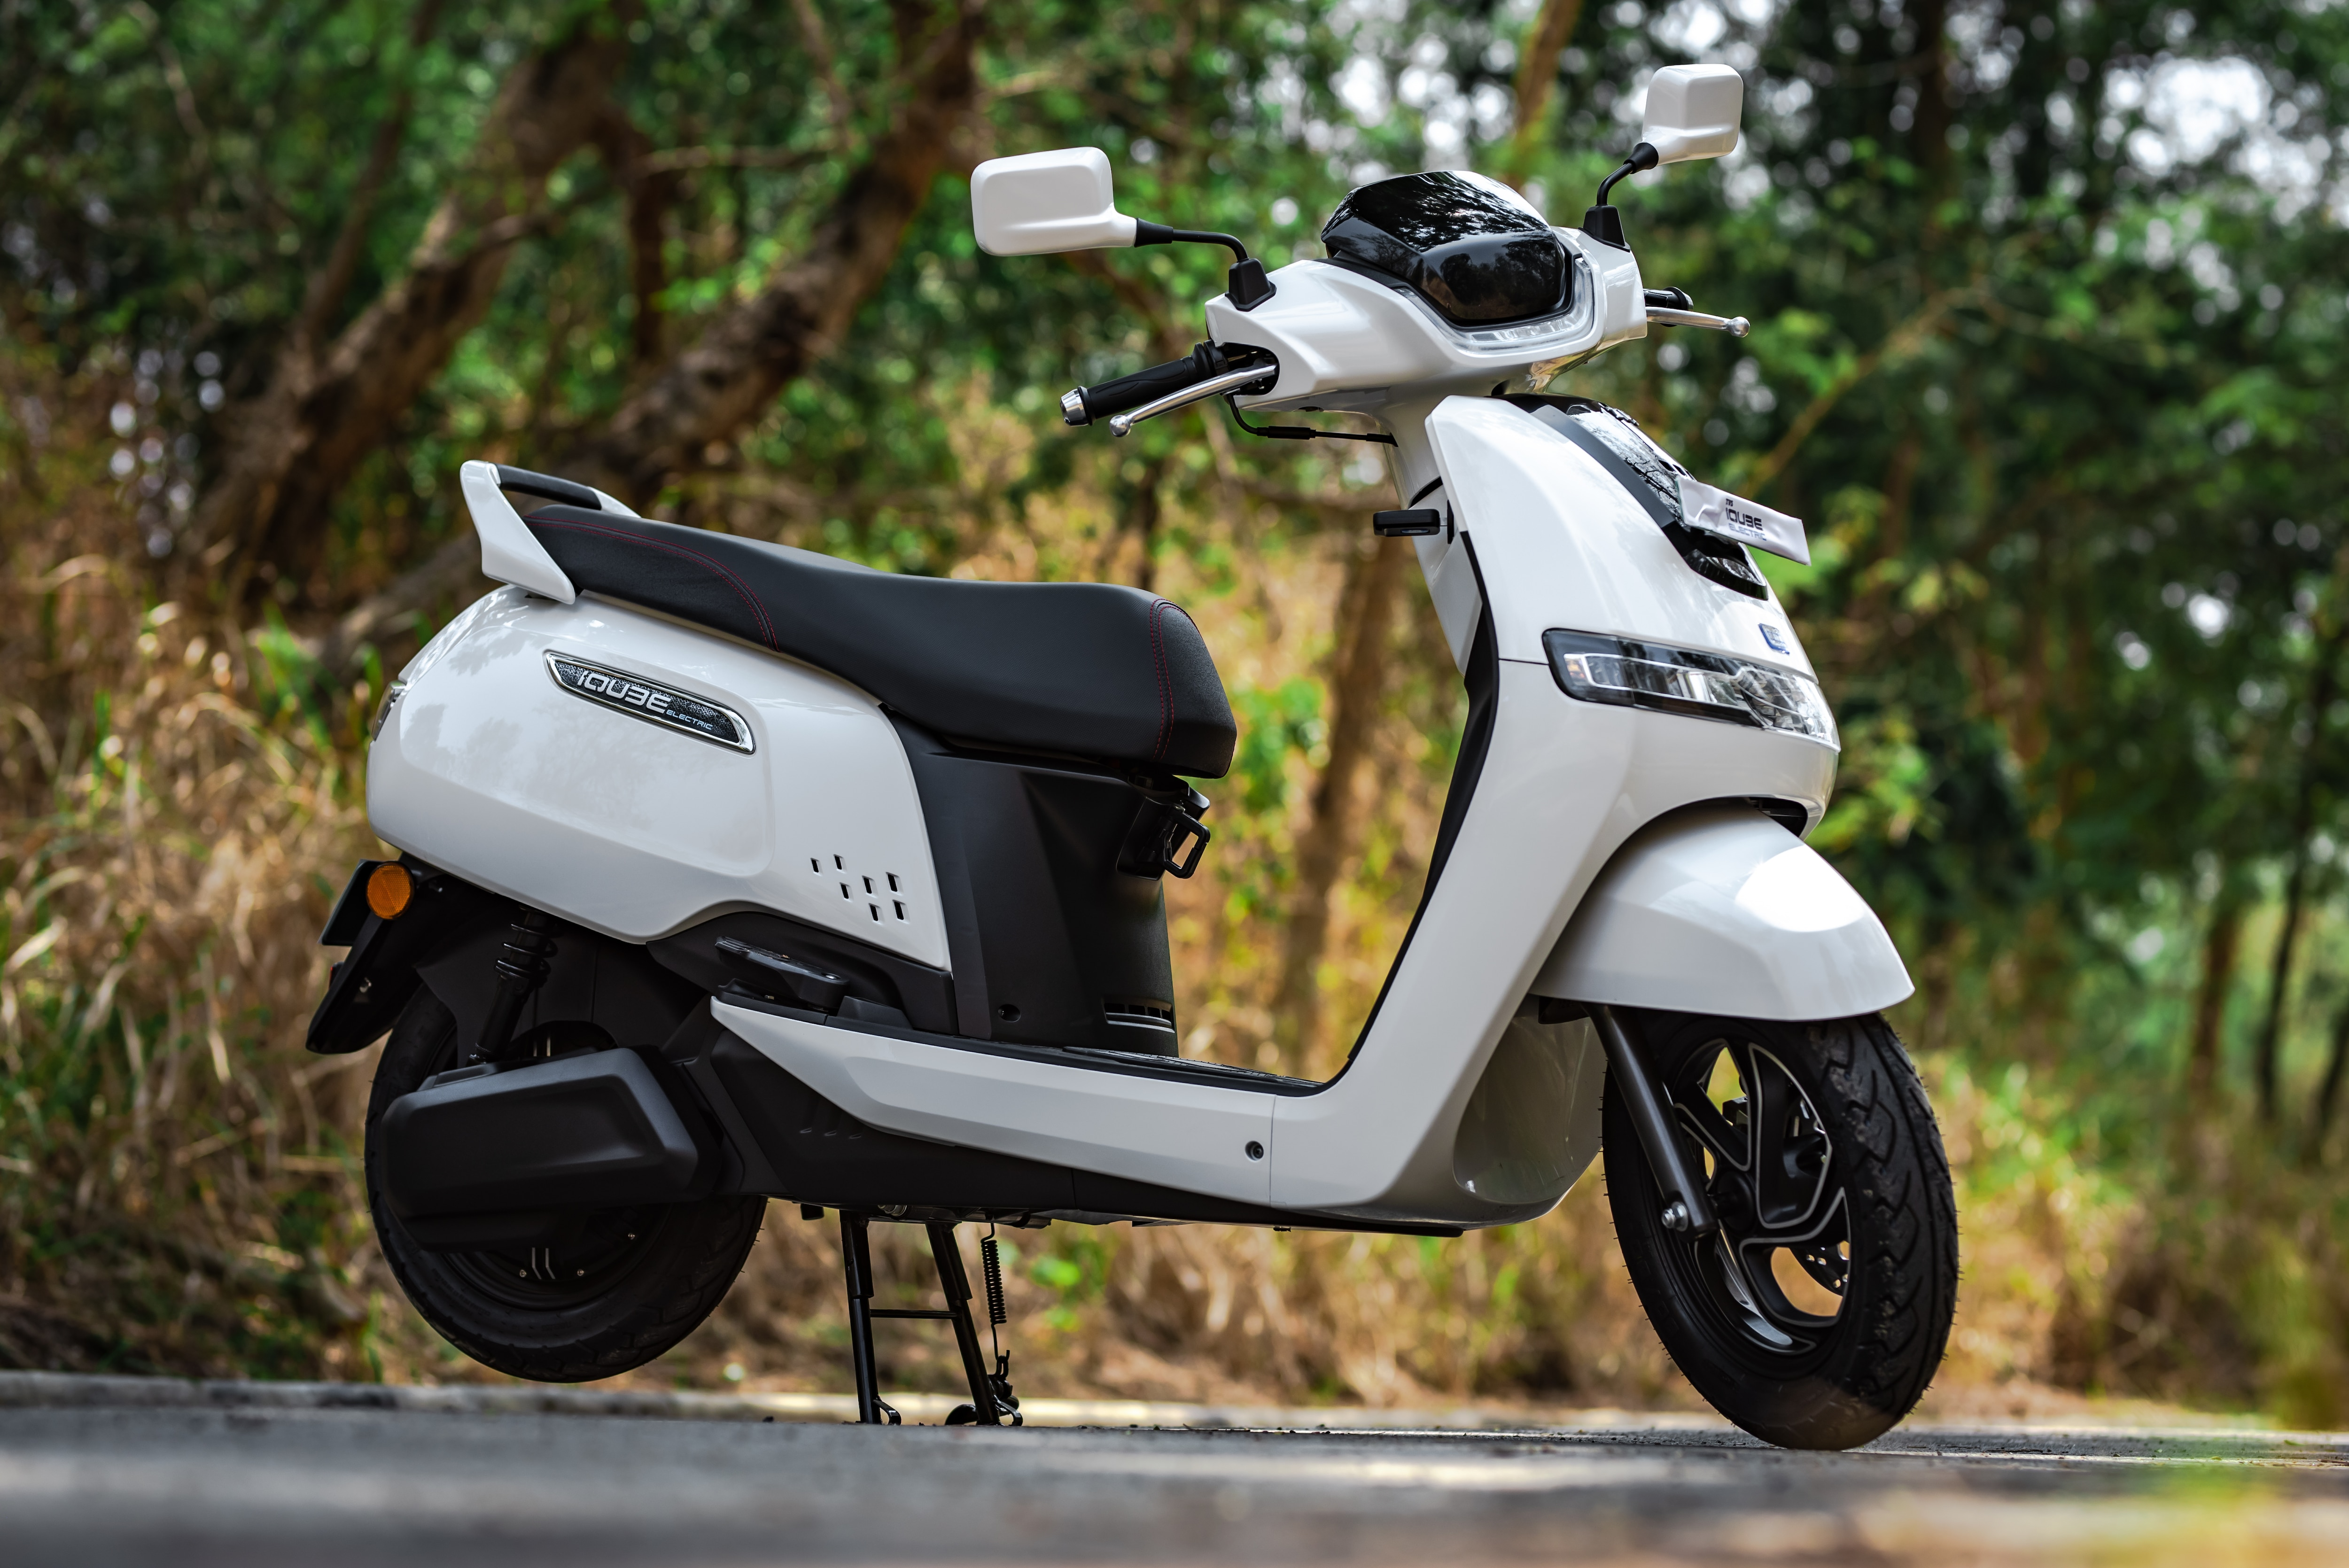 TVS iQube Electric: Pros, Cons, Should You Buy One?